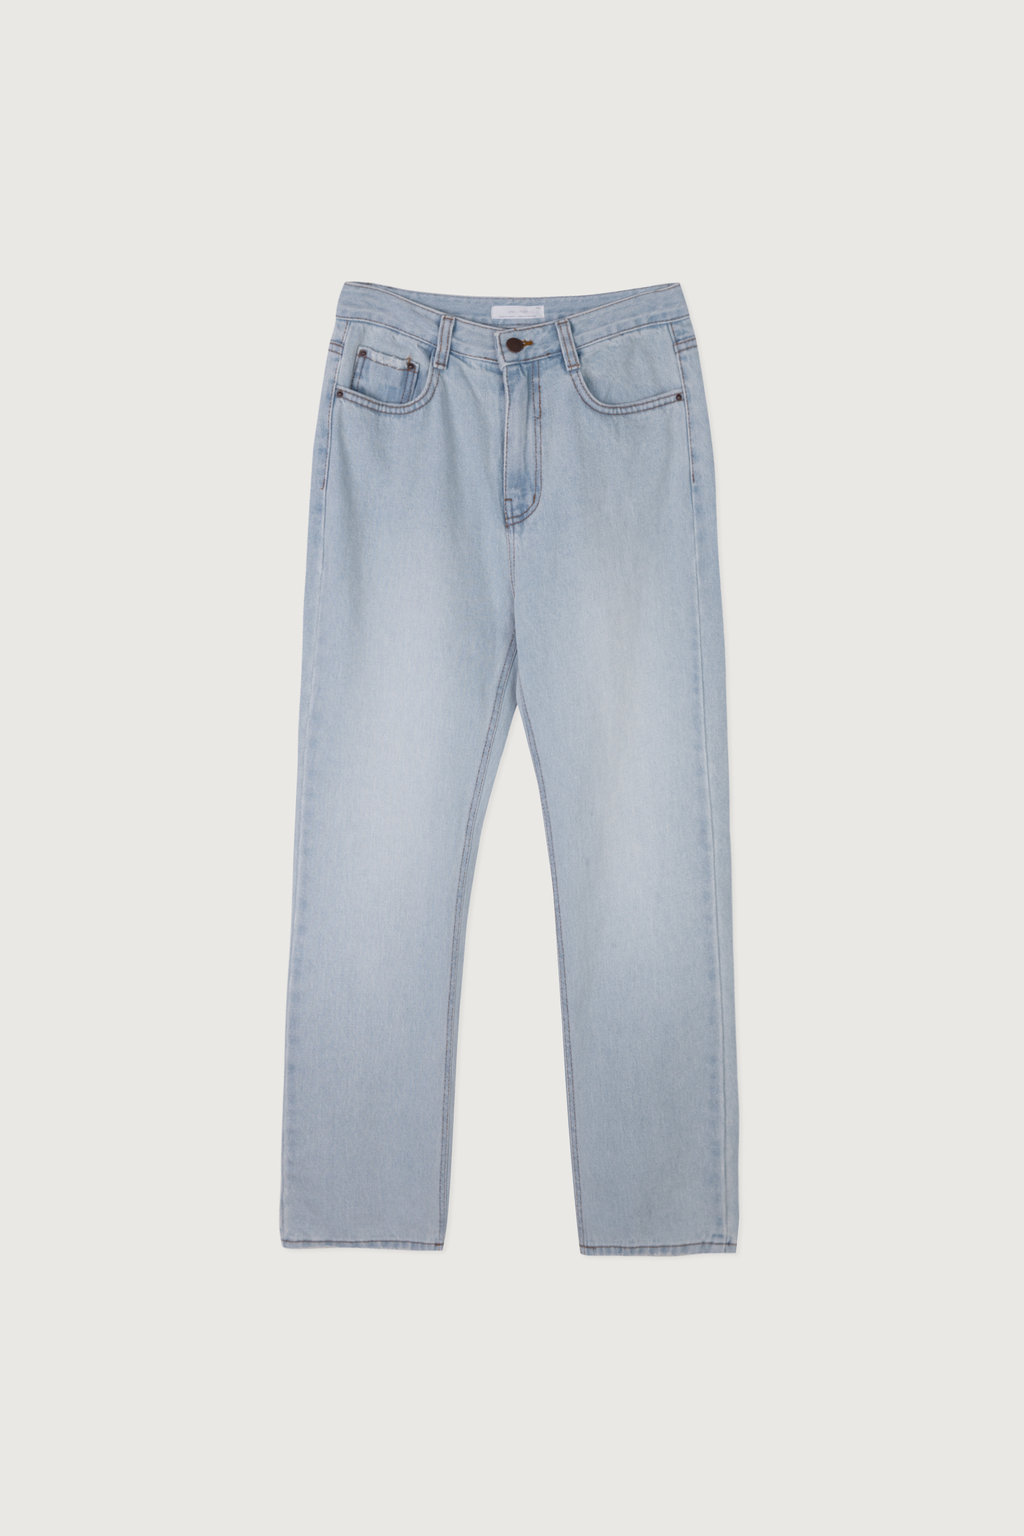 Jean K006 Light Blue 5